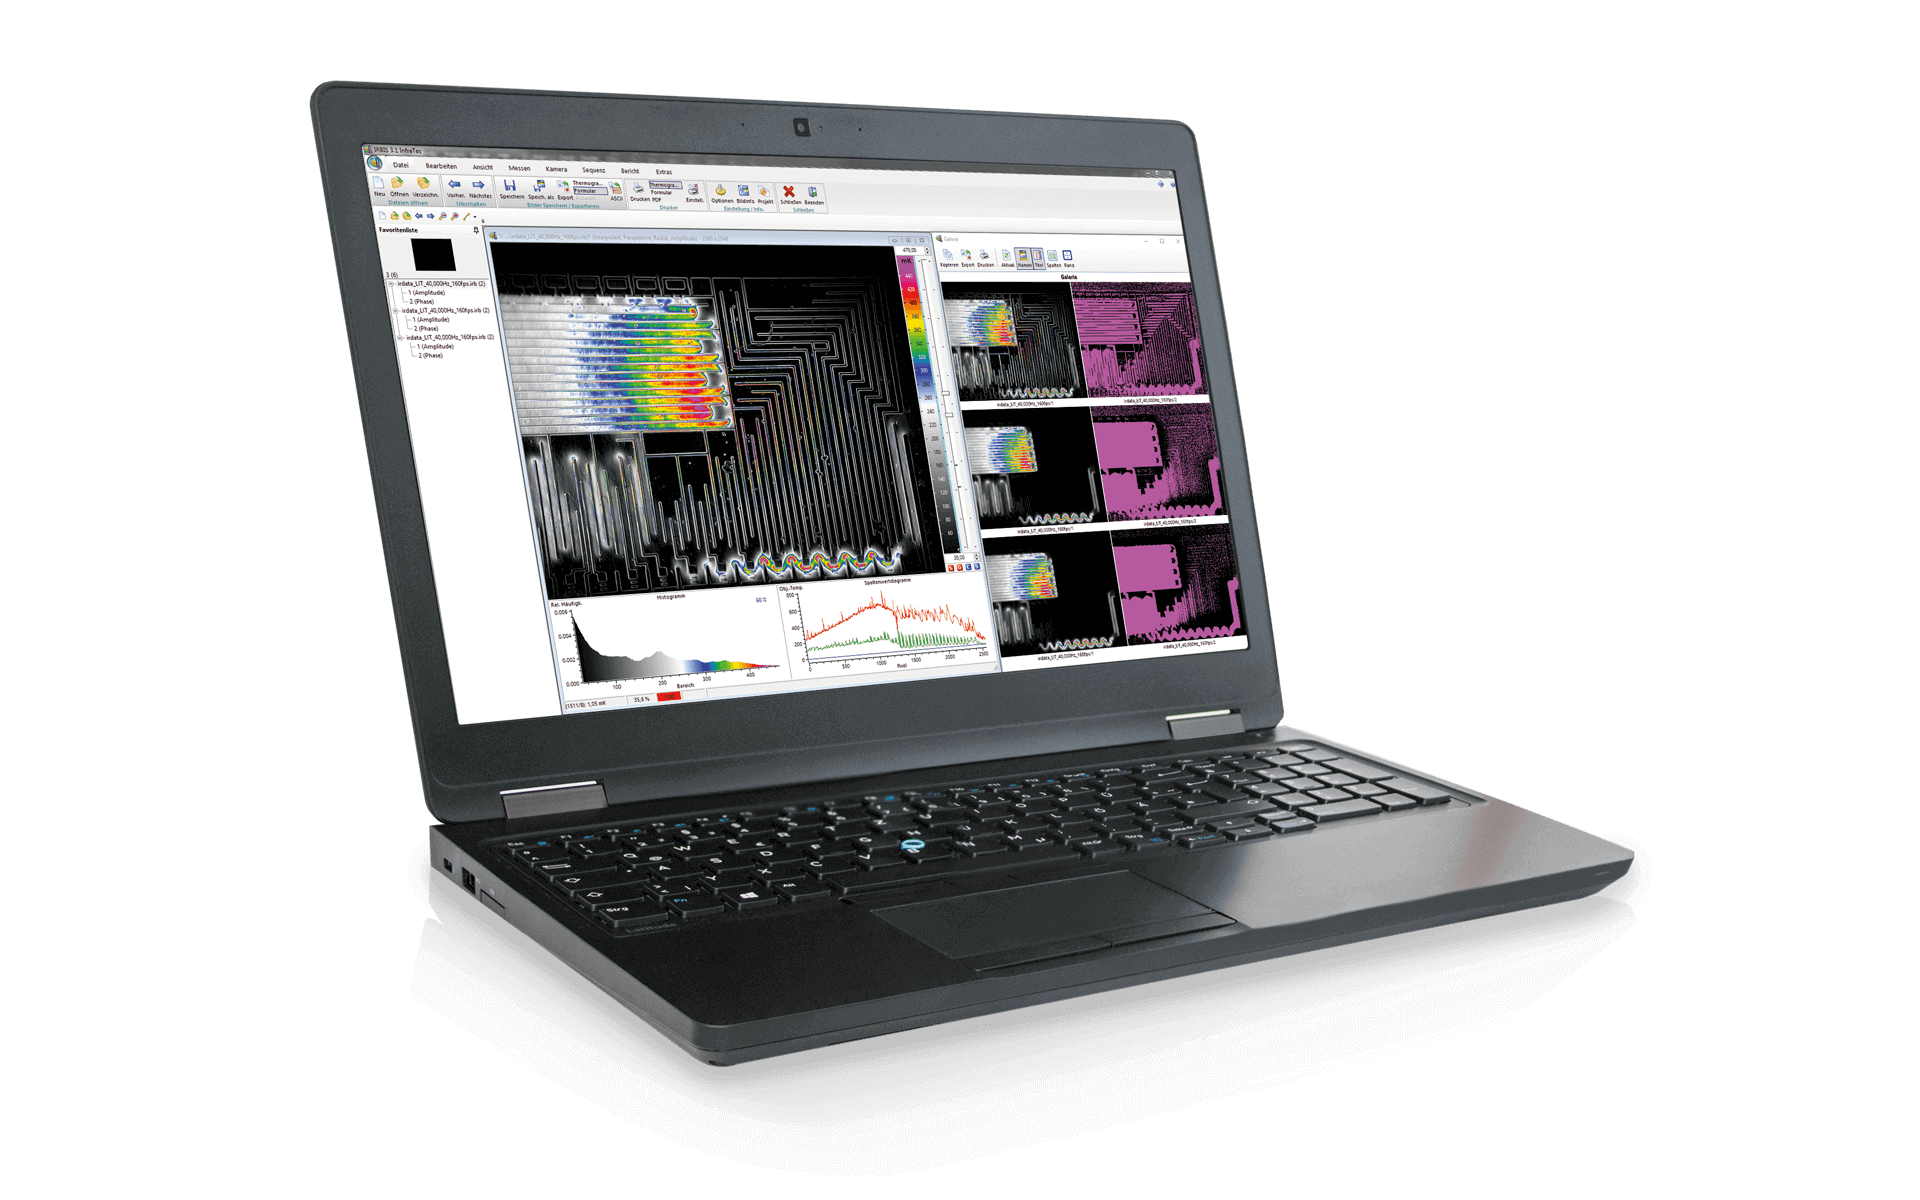 Notebook mit Thermografie-Software IRBIS® 3 von InfraTec